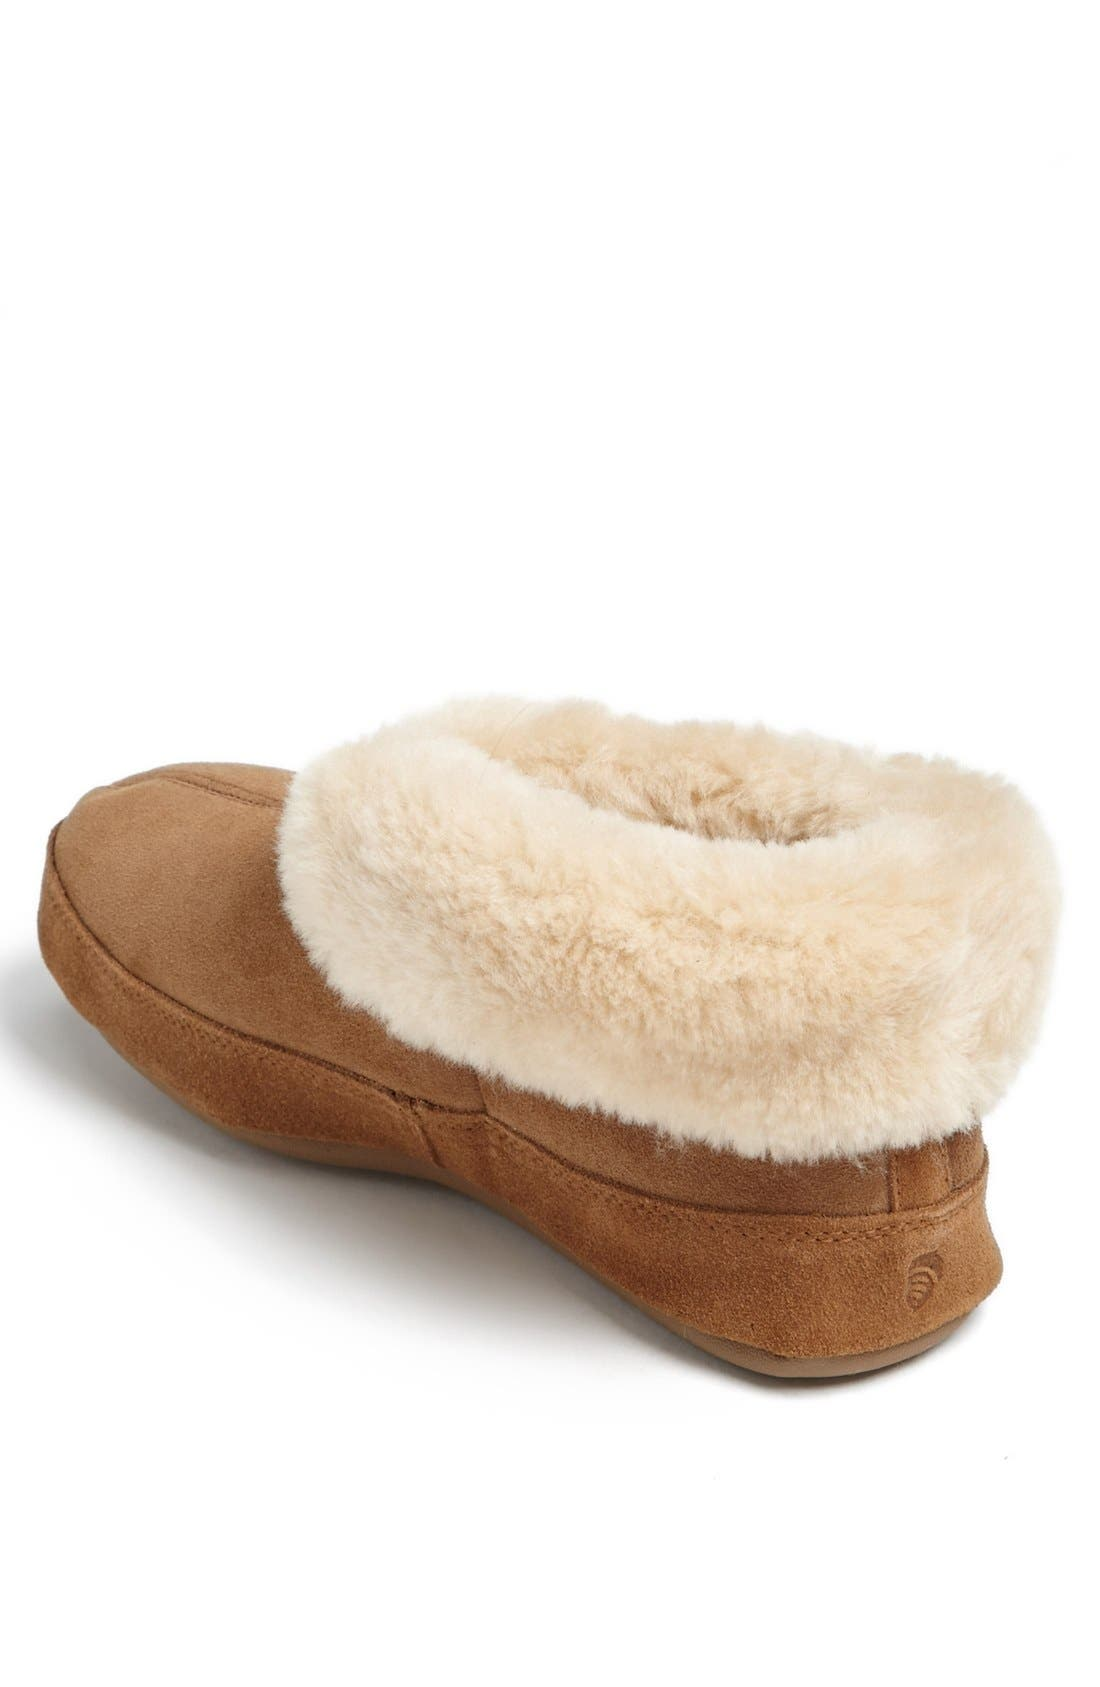 Genuine Sheepskin Slipper,                             Alternate thumbnail 3, color,                             WALNUT